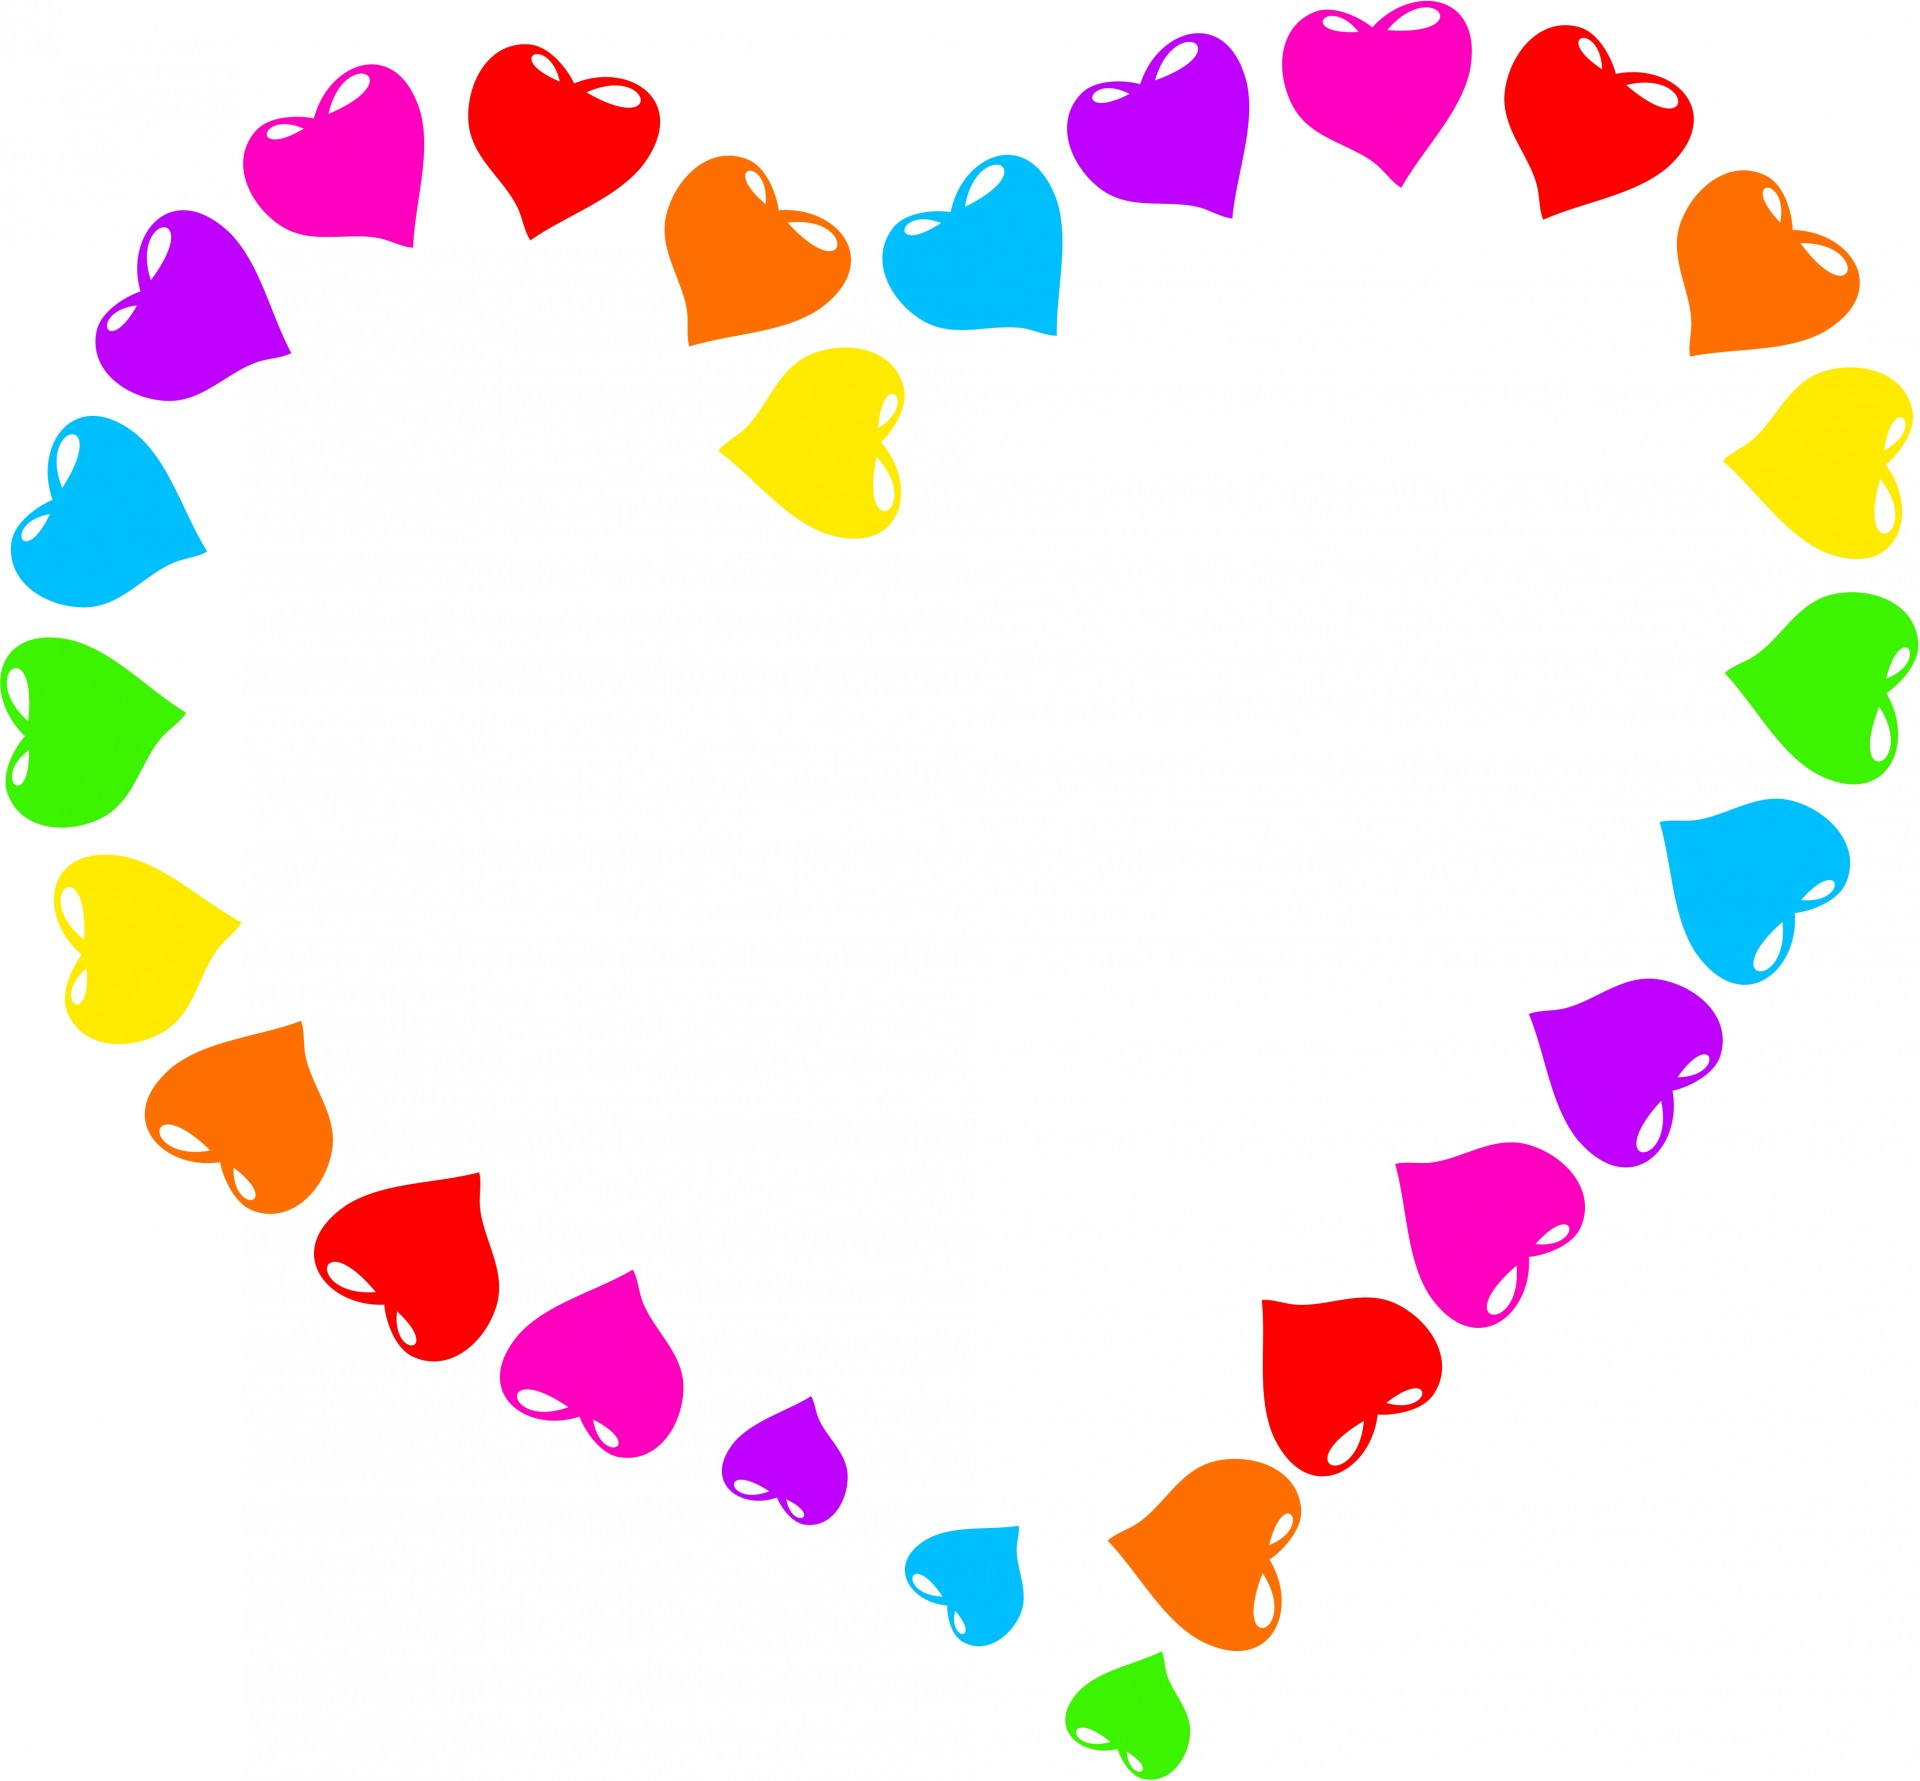 Rainbow free stock photo. Heart clipart picture transparent stock